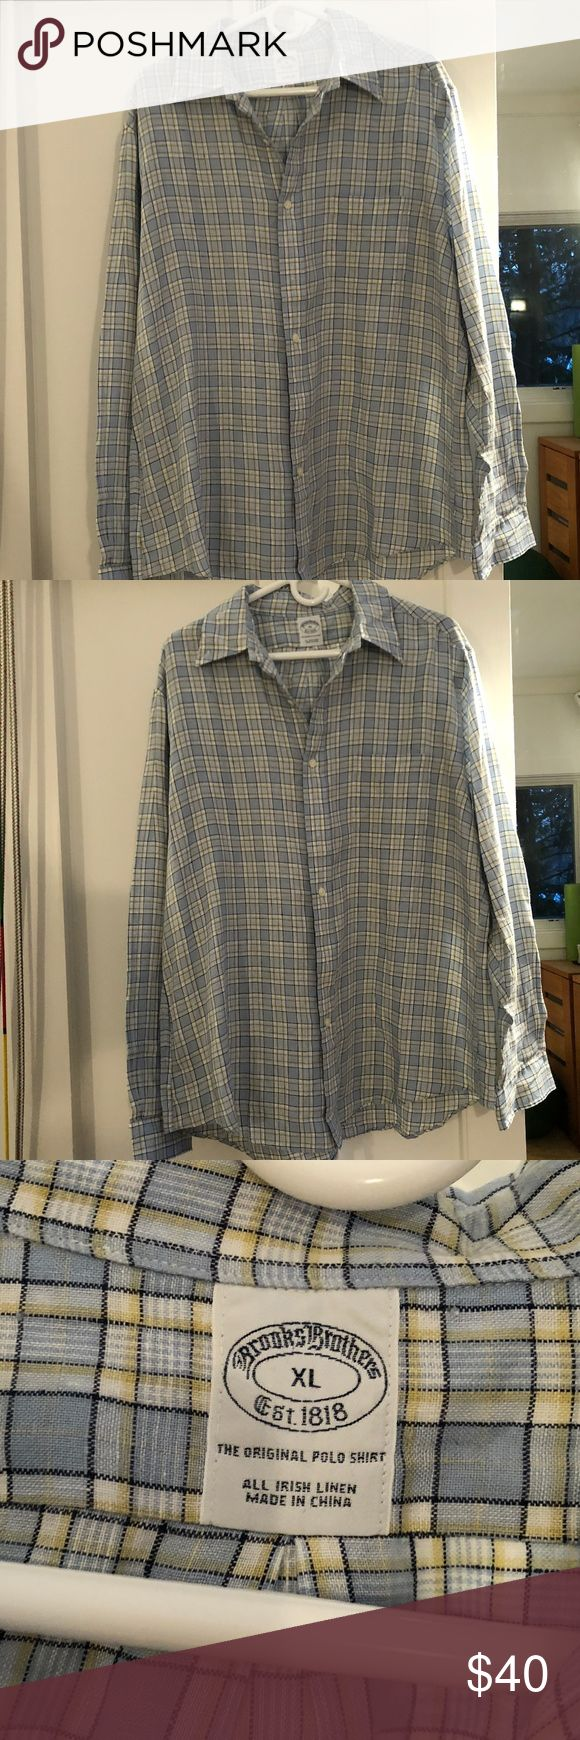 Brooks Brothers The Original Polo Button Up Shirt Perfect condition button up checkered dress shirt. Brooks Brothers Shirts Dress Shirts